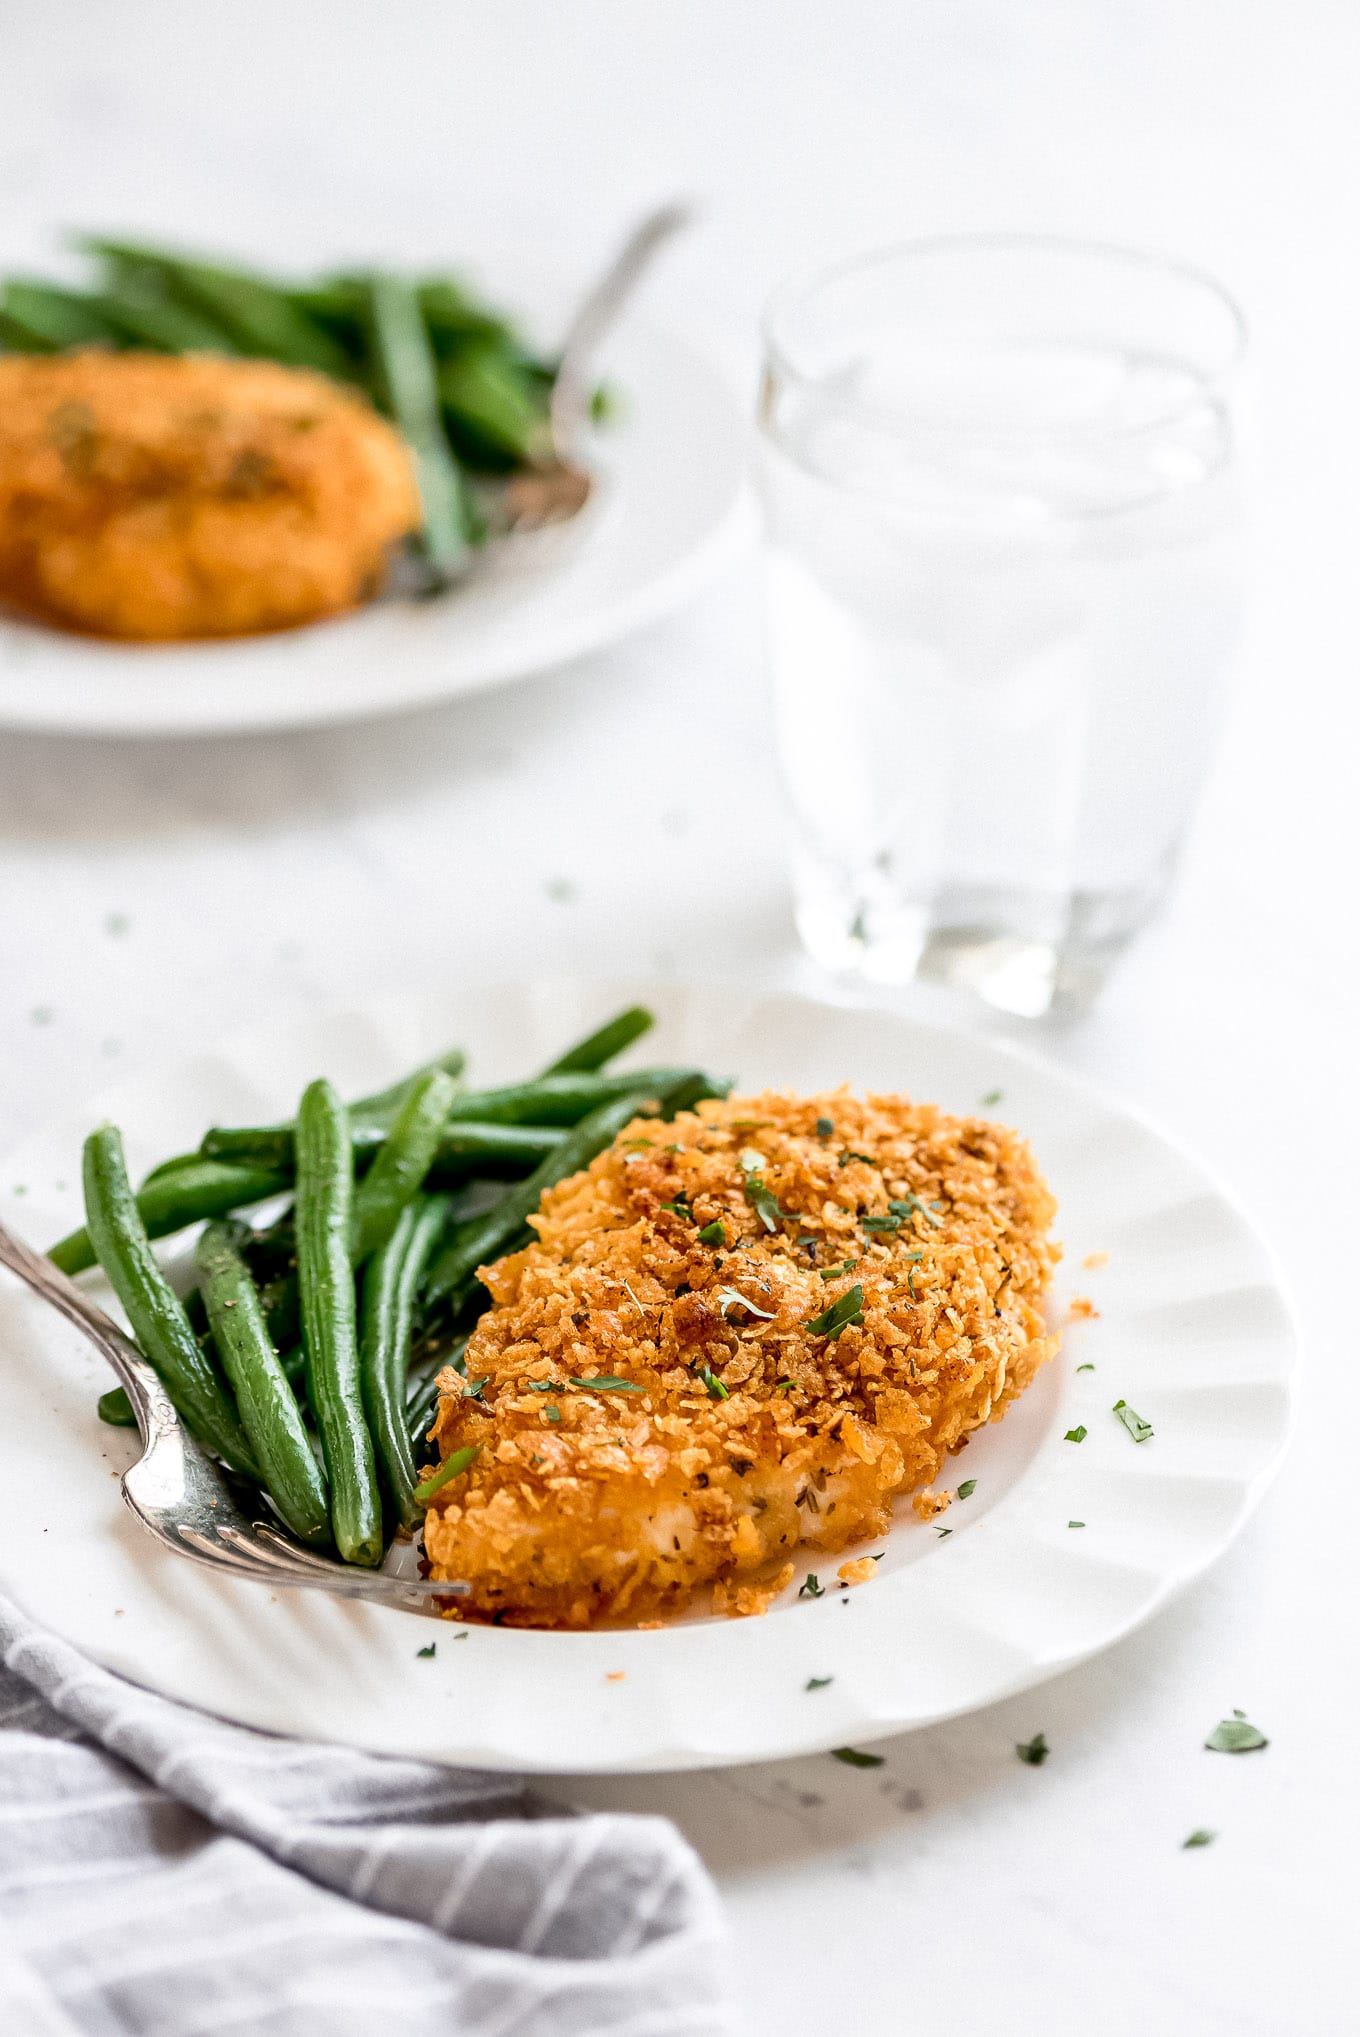 Cornflake Chicken breast on a plate with a side of green beans.